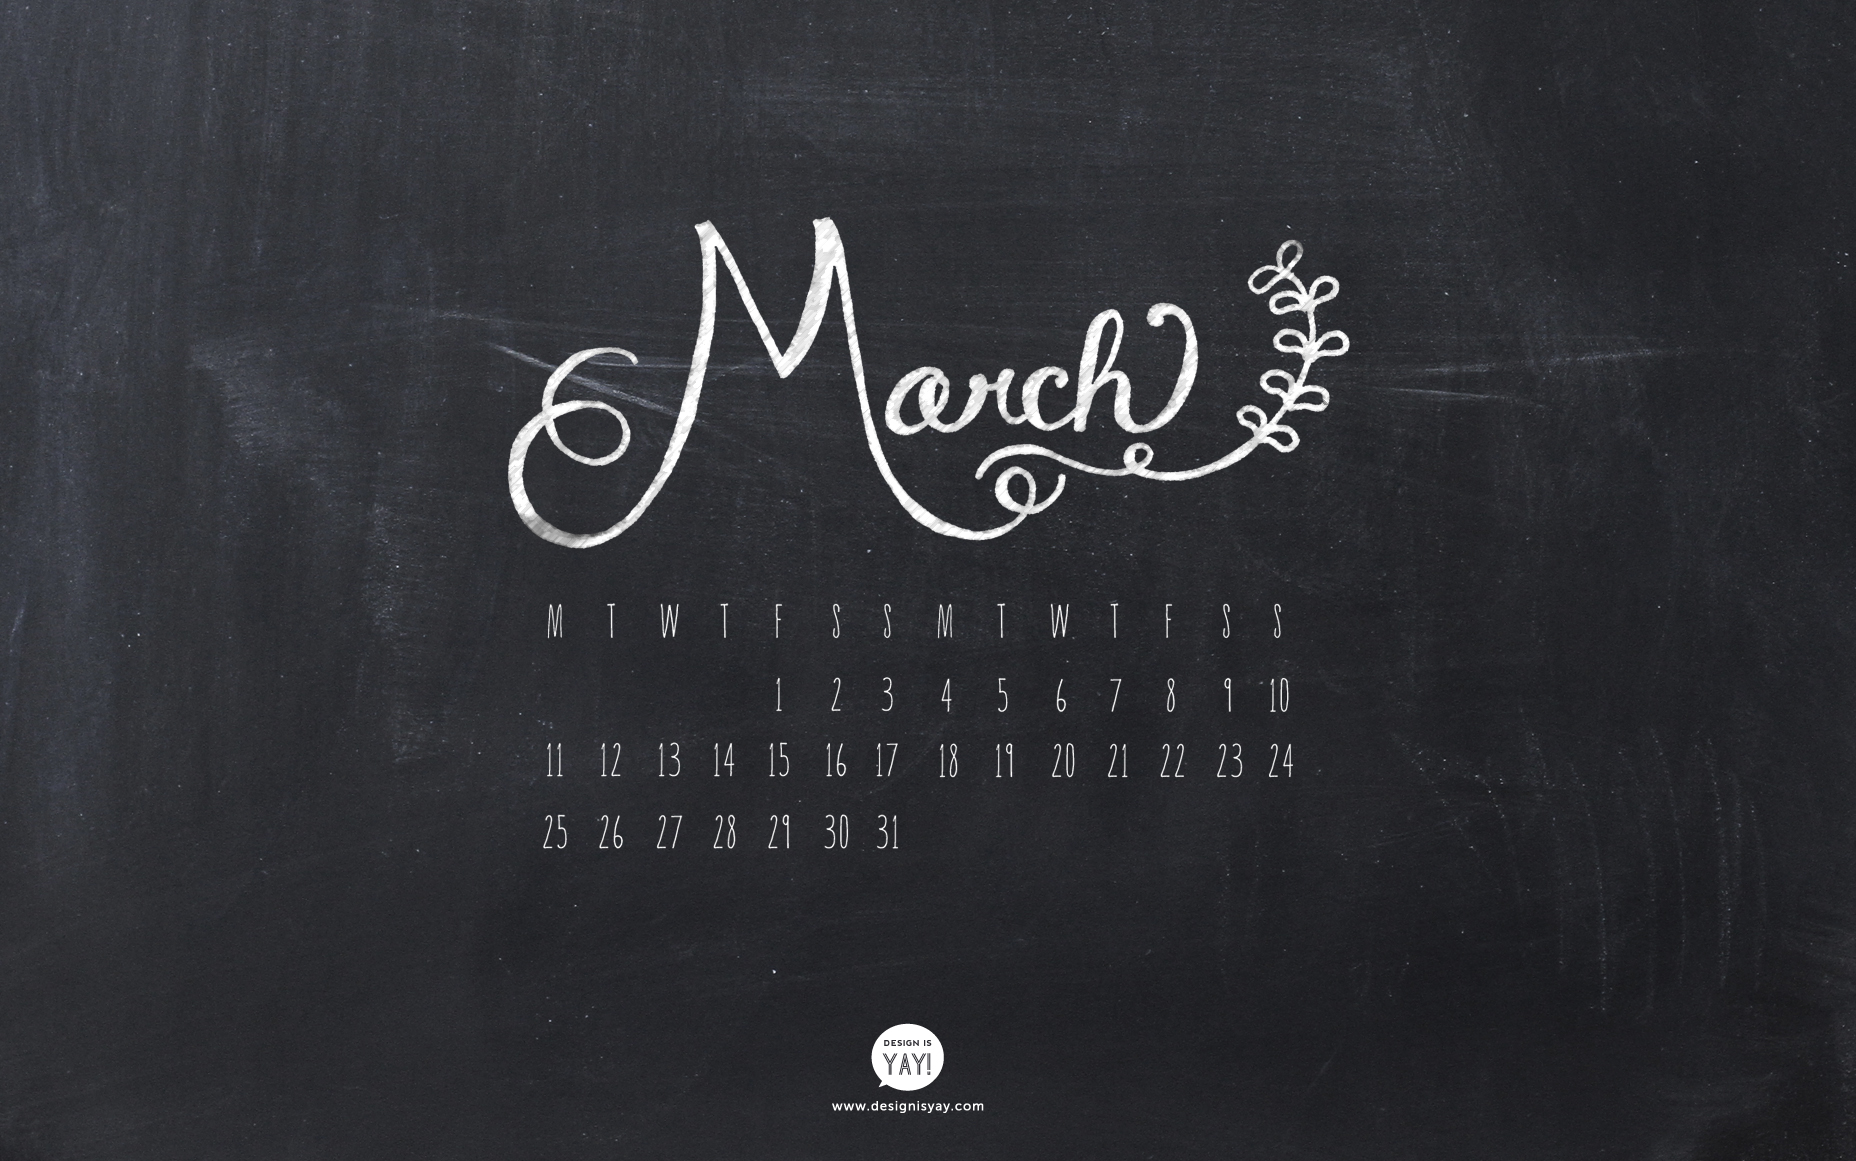 Desktop Wallpaper Calendar March 2013   Design Is Yay 1856x1161